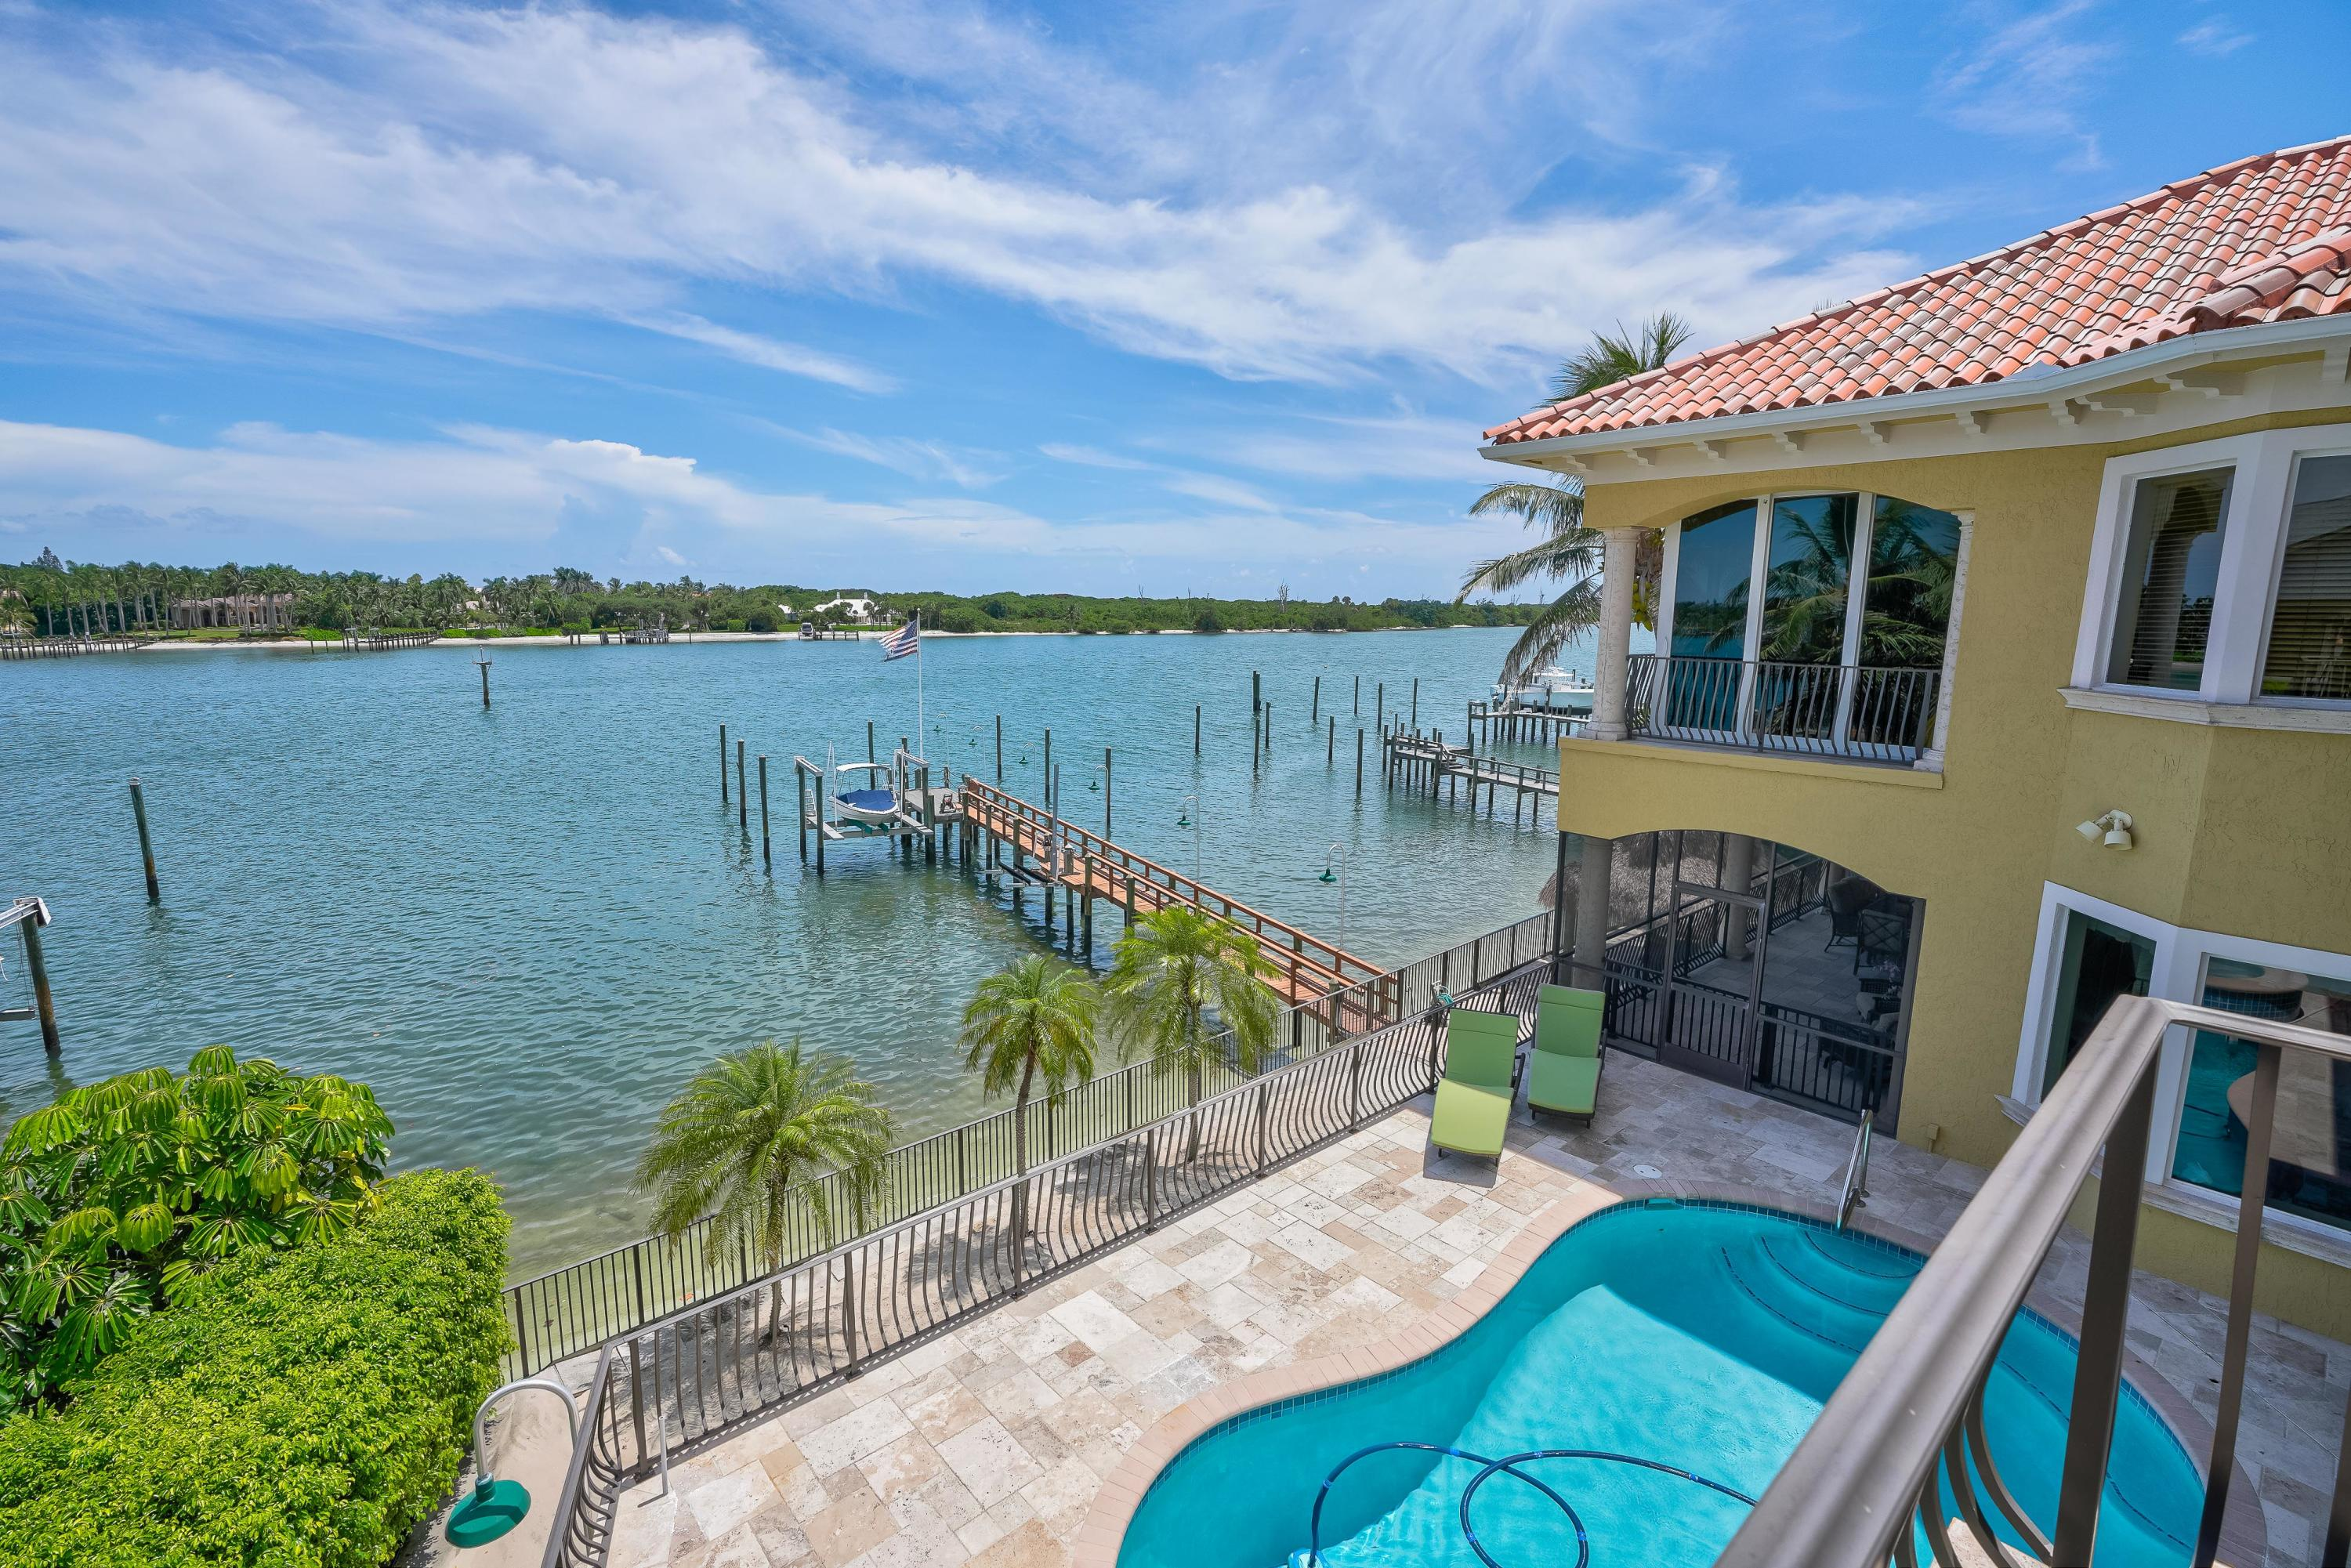 New Home for sale at 17911 Federal Highway in Tequesta